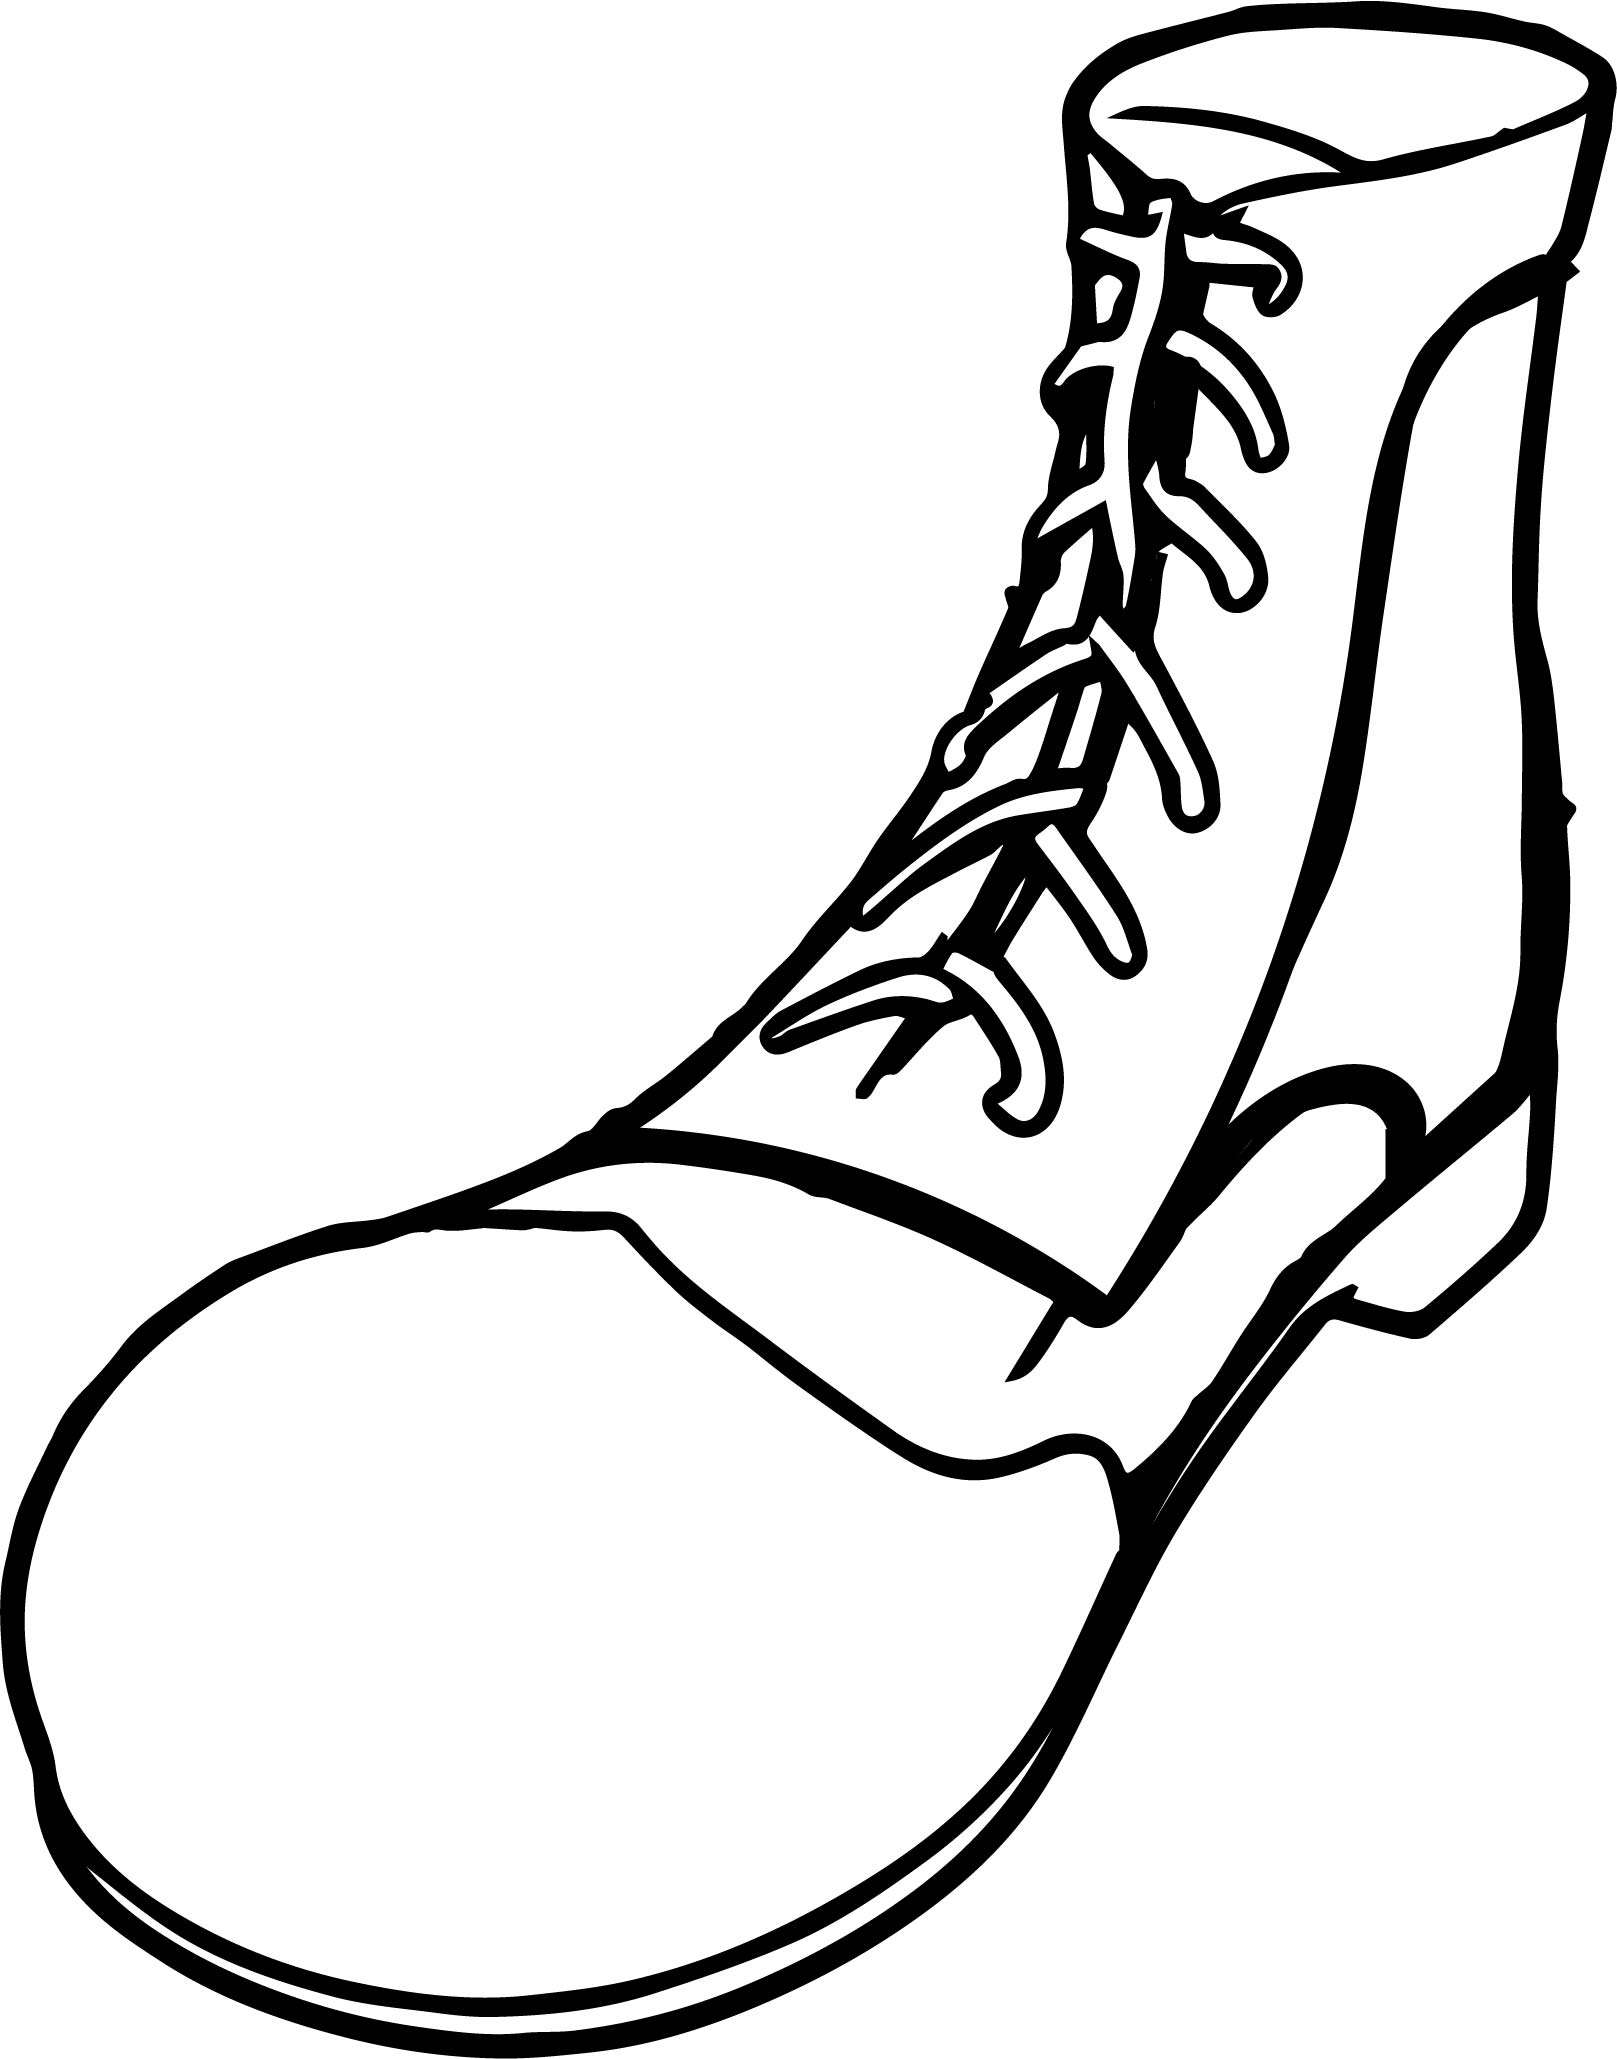 1617x2059 Clown Shoes Coloring Page Wecoloringpage